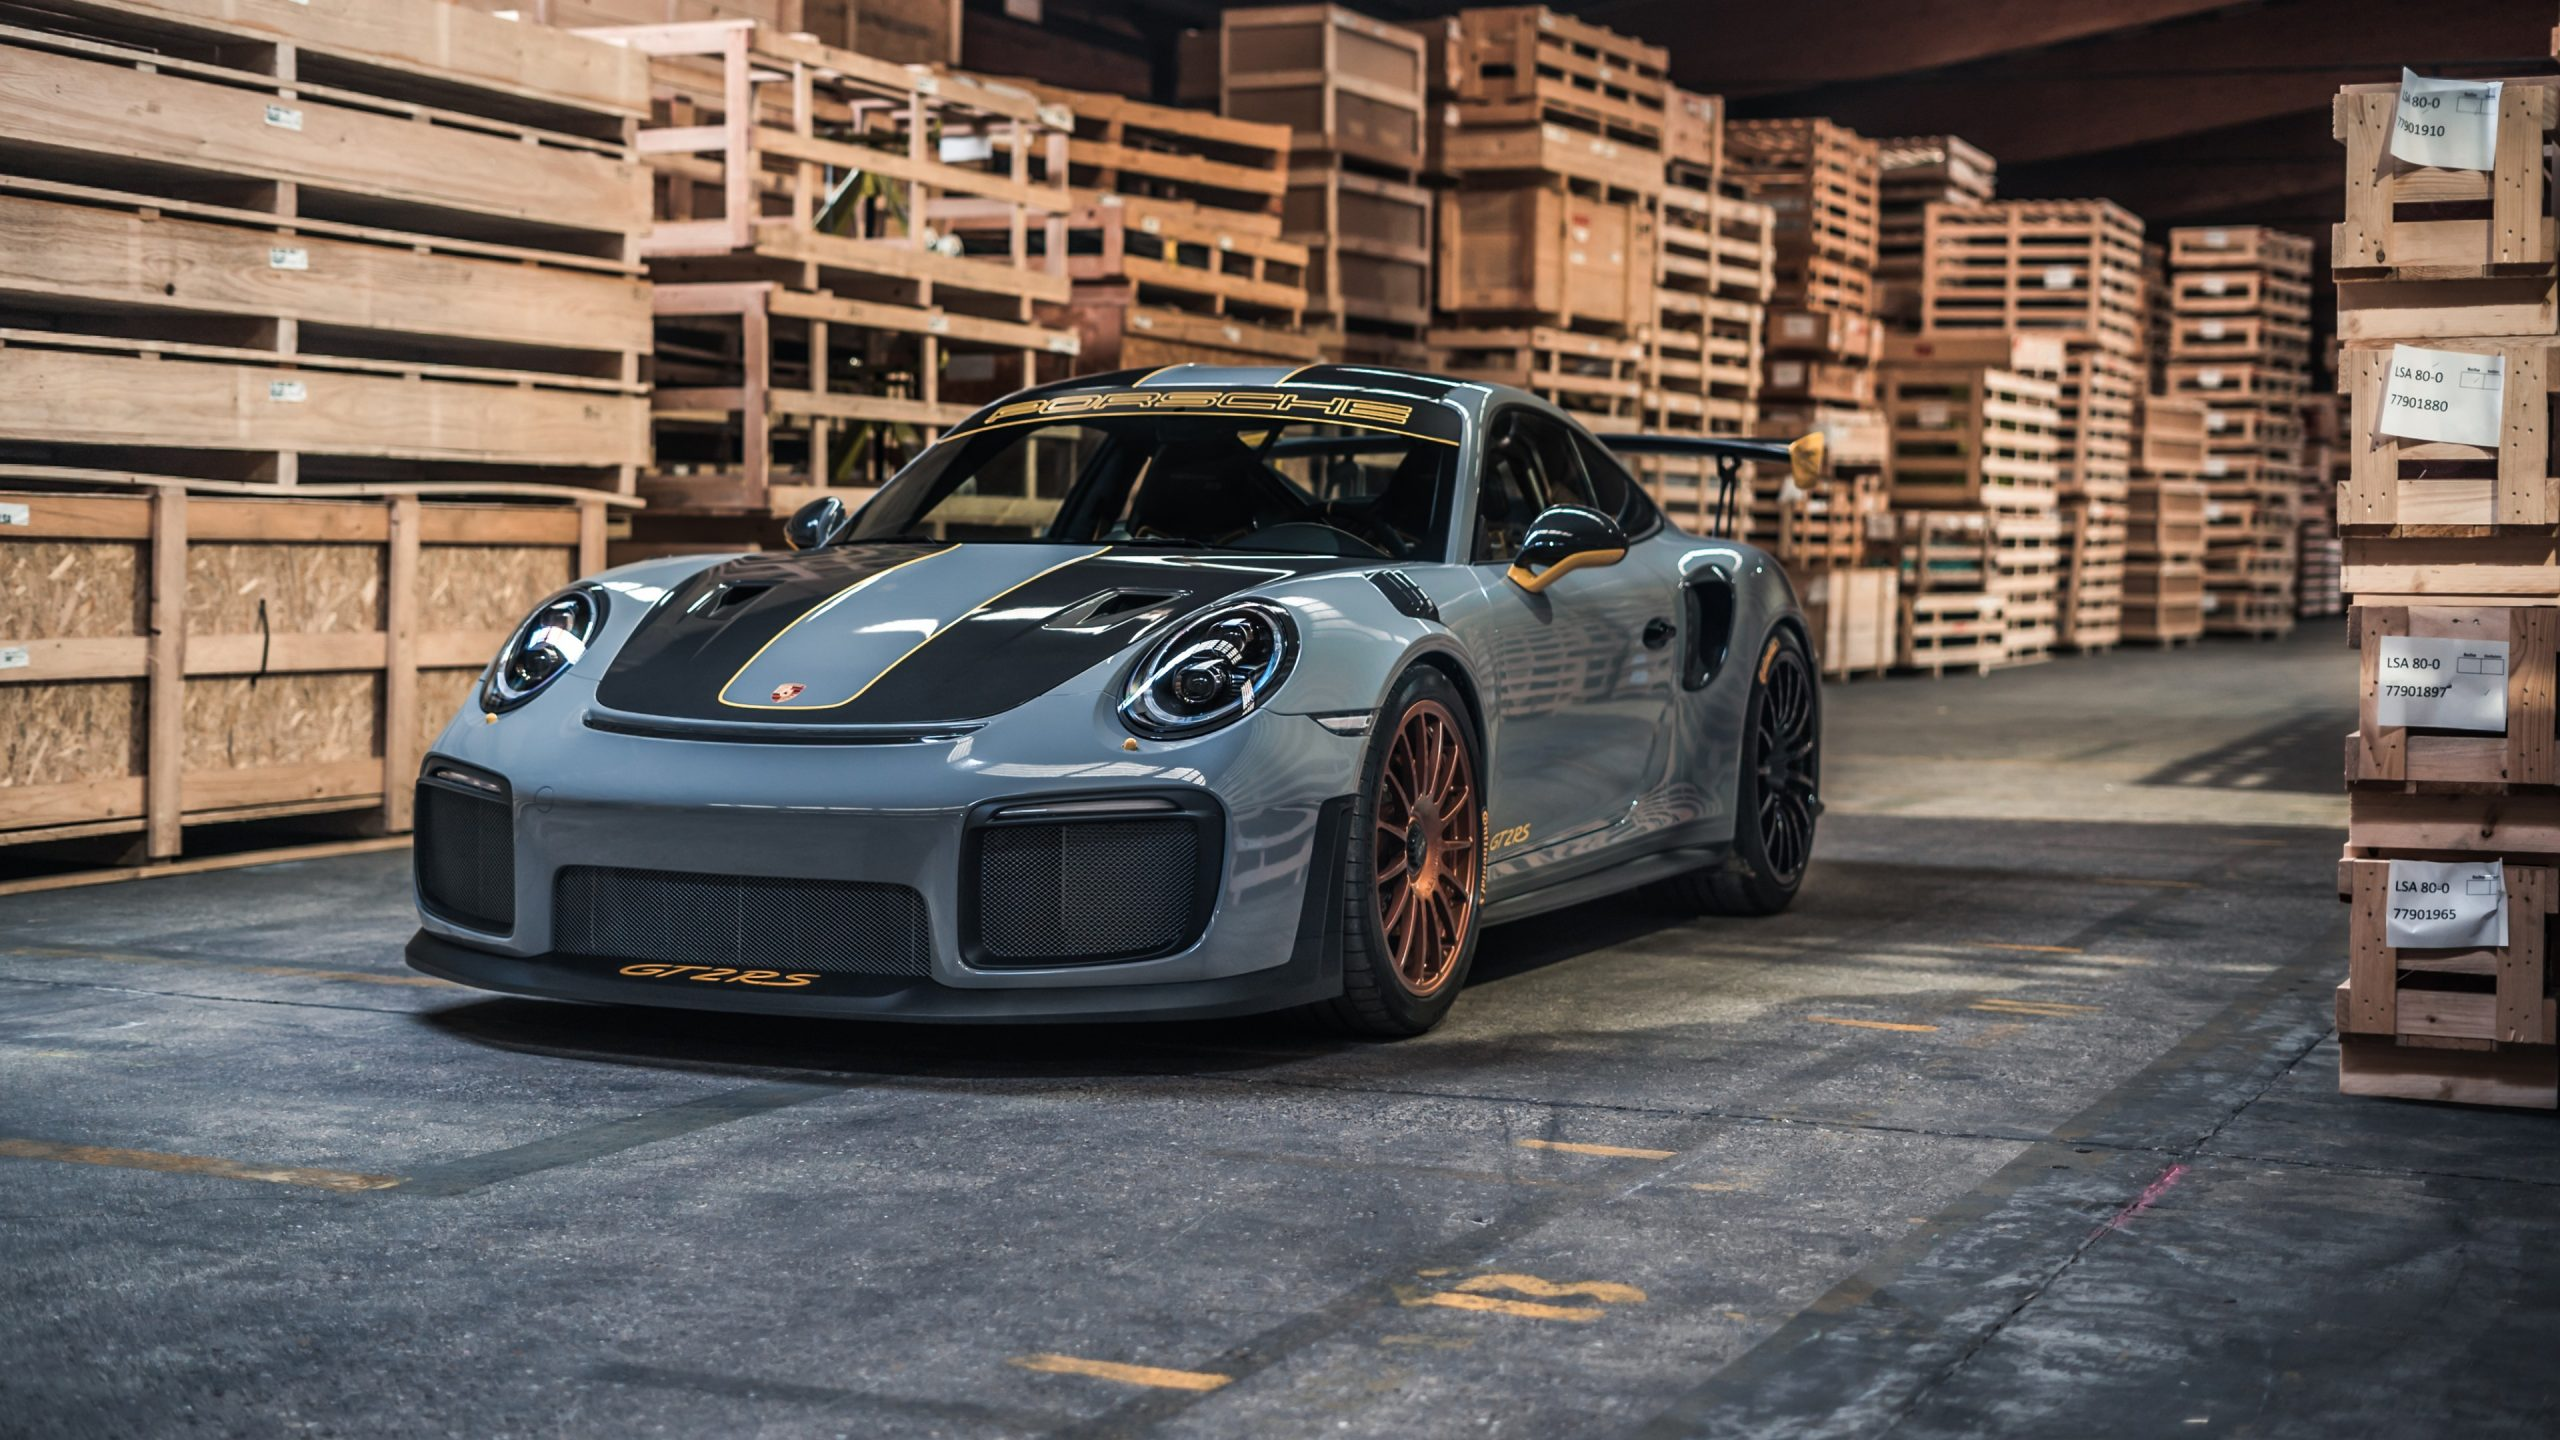 edo competition porsche 911 gt2 rs 2020 4k 2